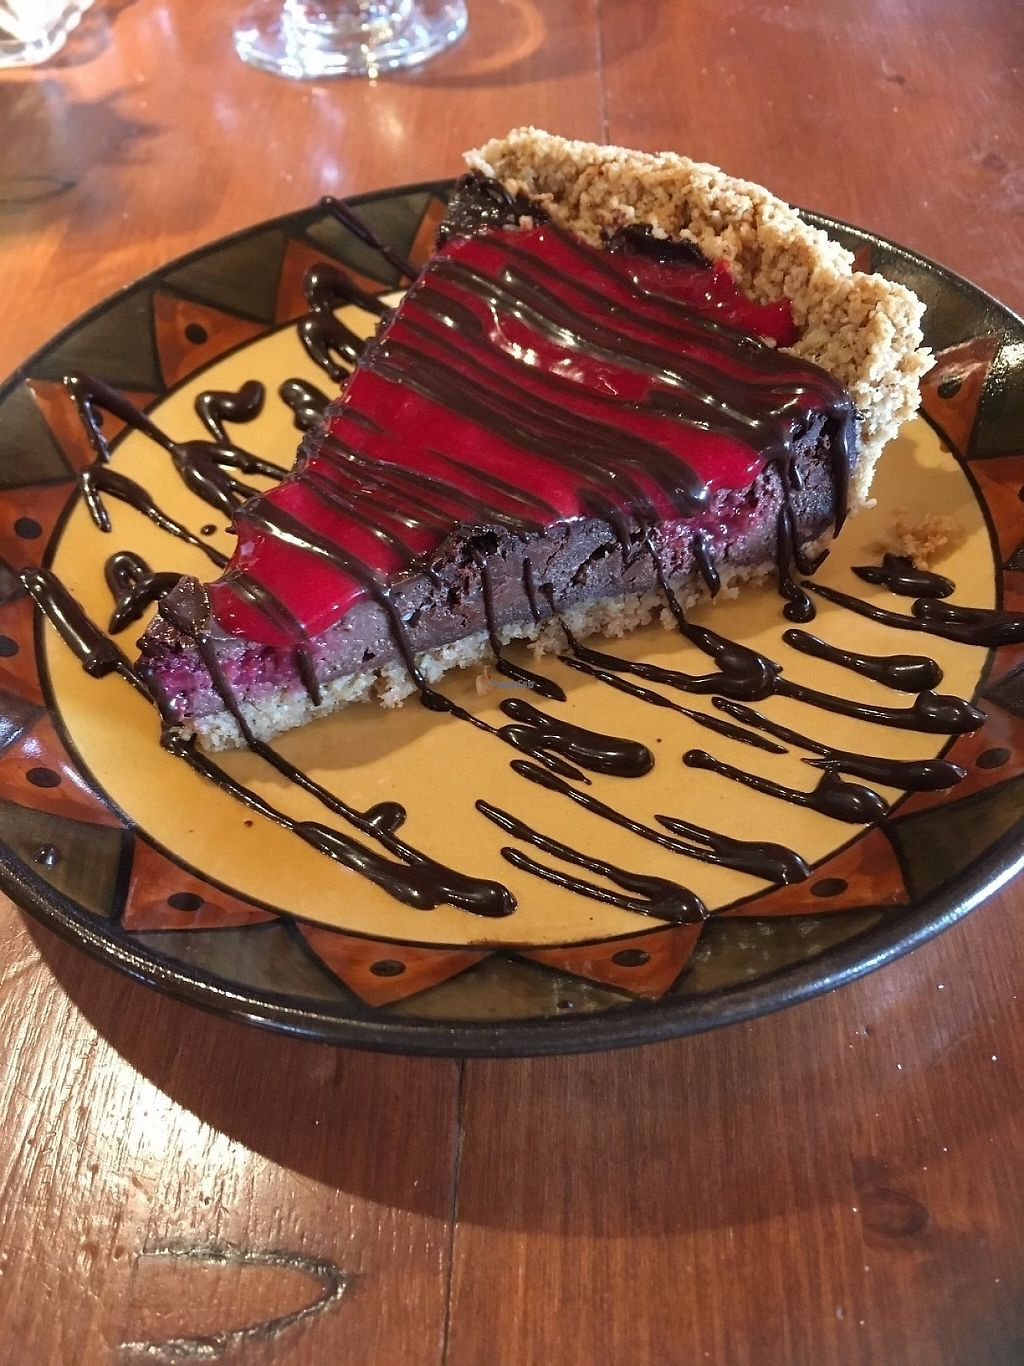 """Photo of Calactus Cafe  by <a href=""""/members/profile/alicer19"""">alicer19</a> <br/>Chocolate Raspberry Pie <br/> April 10, 2017  - <a href='/contact/abuse/image/2916/246705'>Report</a>"""